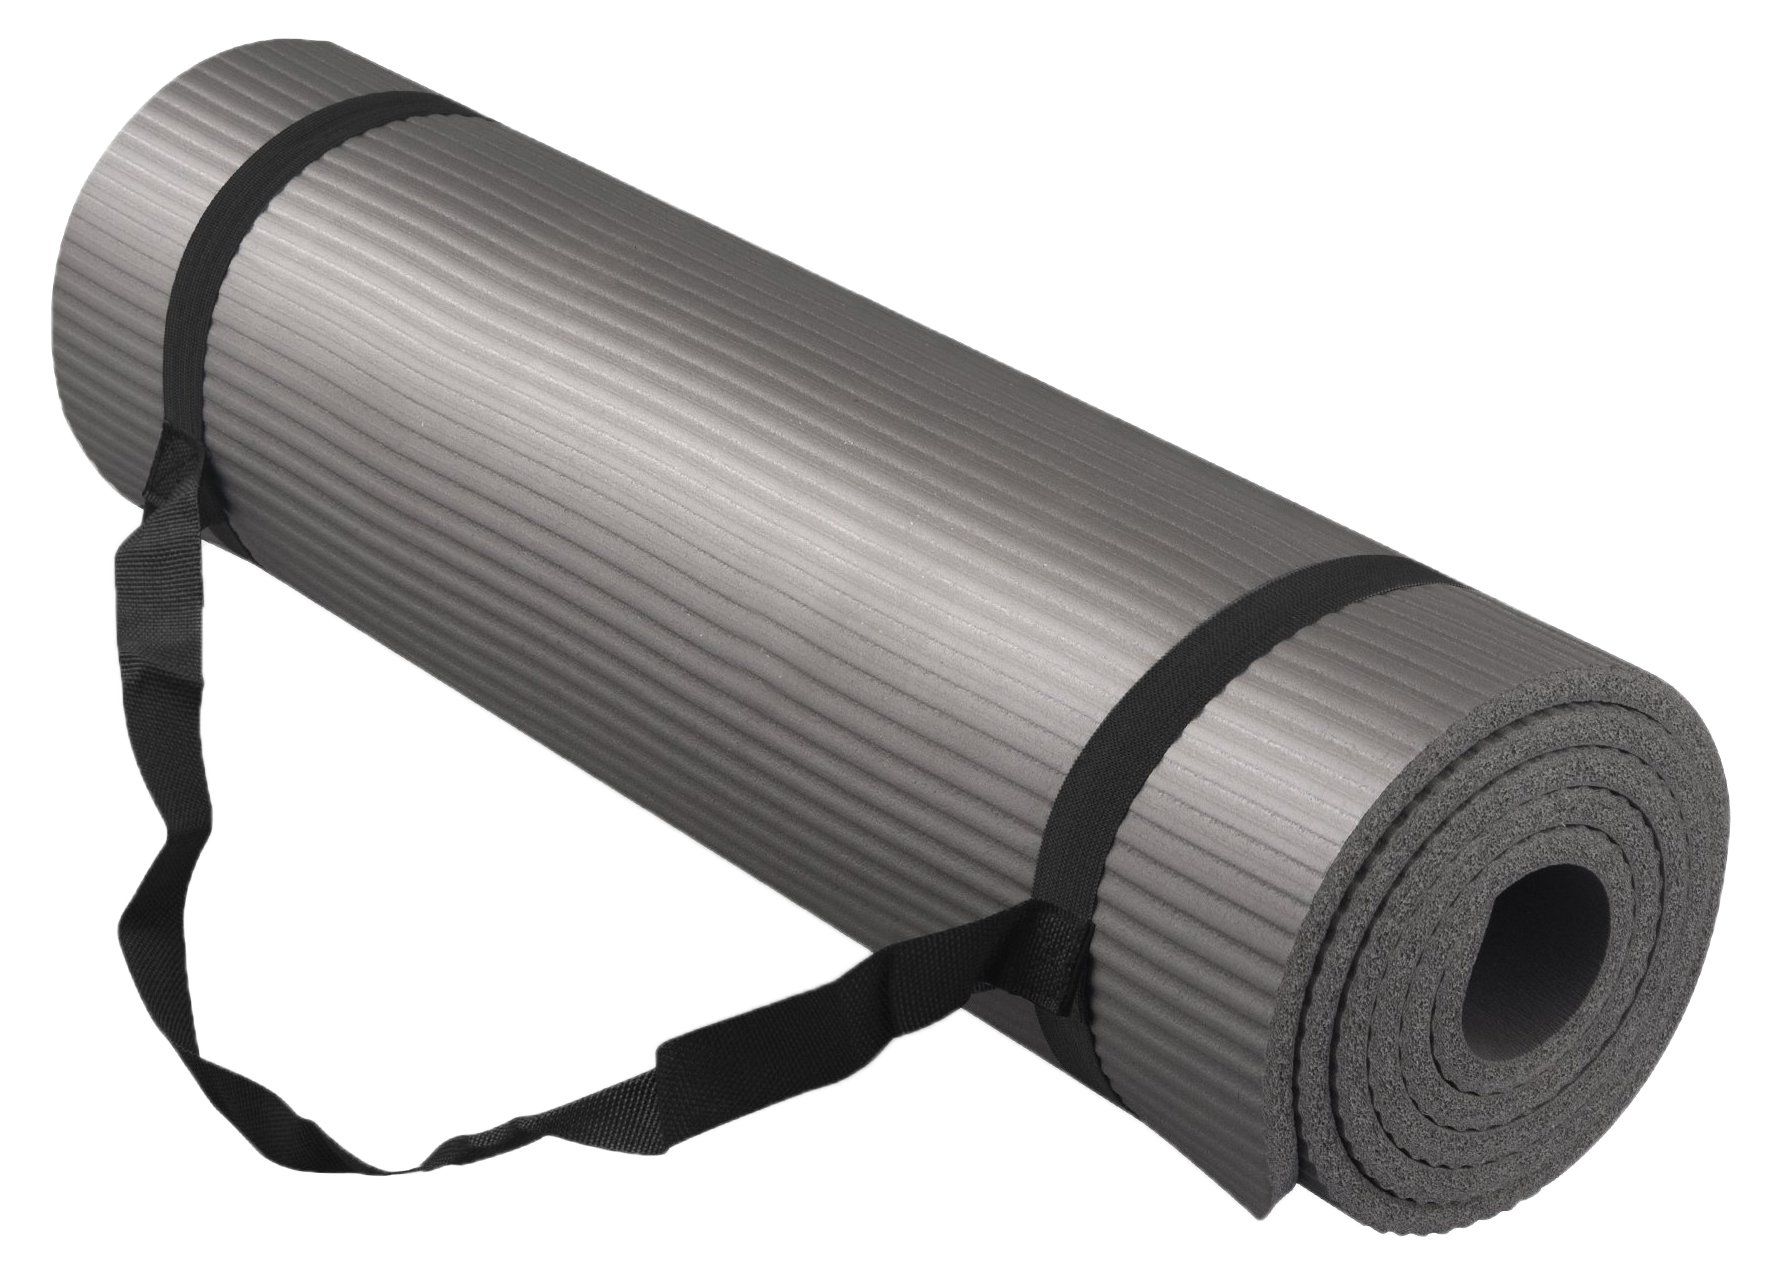 Bojing Yoga Mat Thick NBR, Multipurpose, Multicolor Optional, With Carrying Bag And Strap, Gray